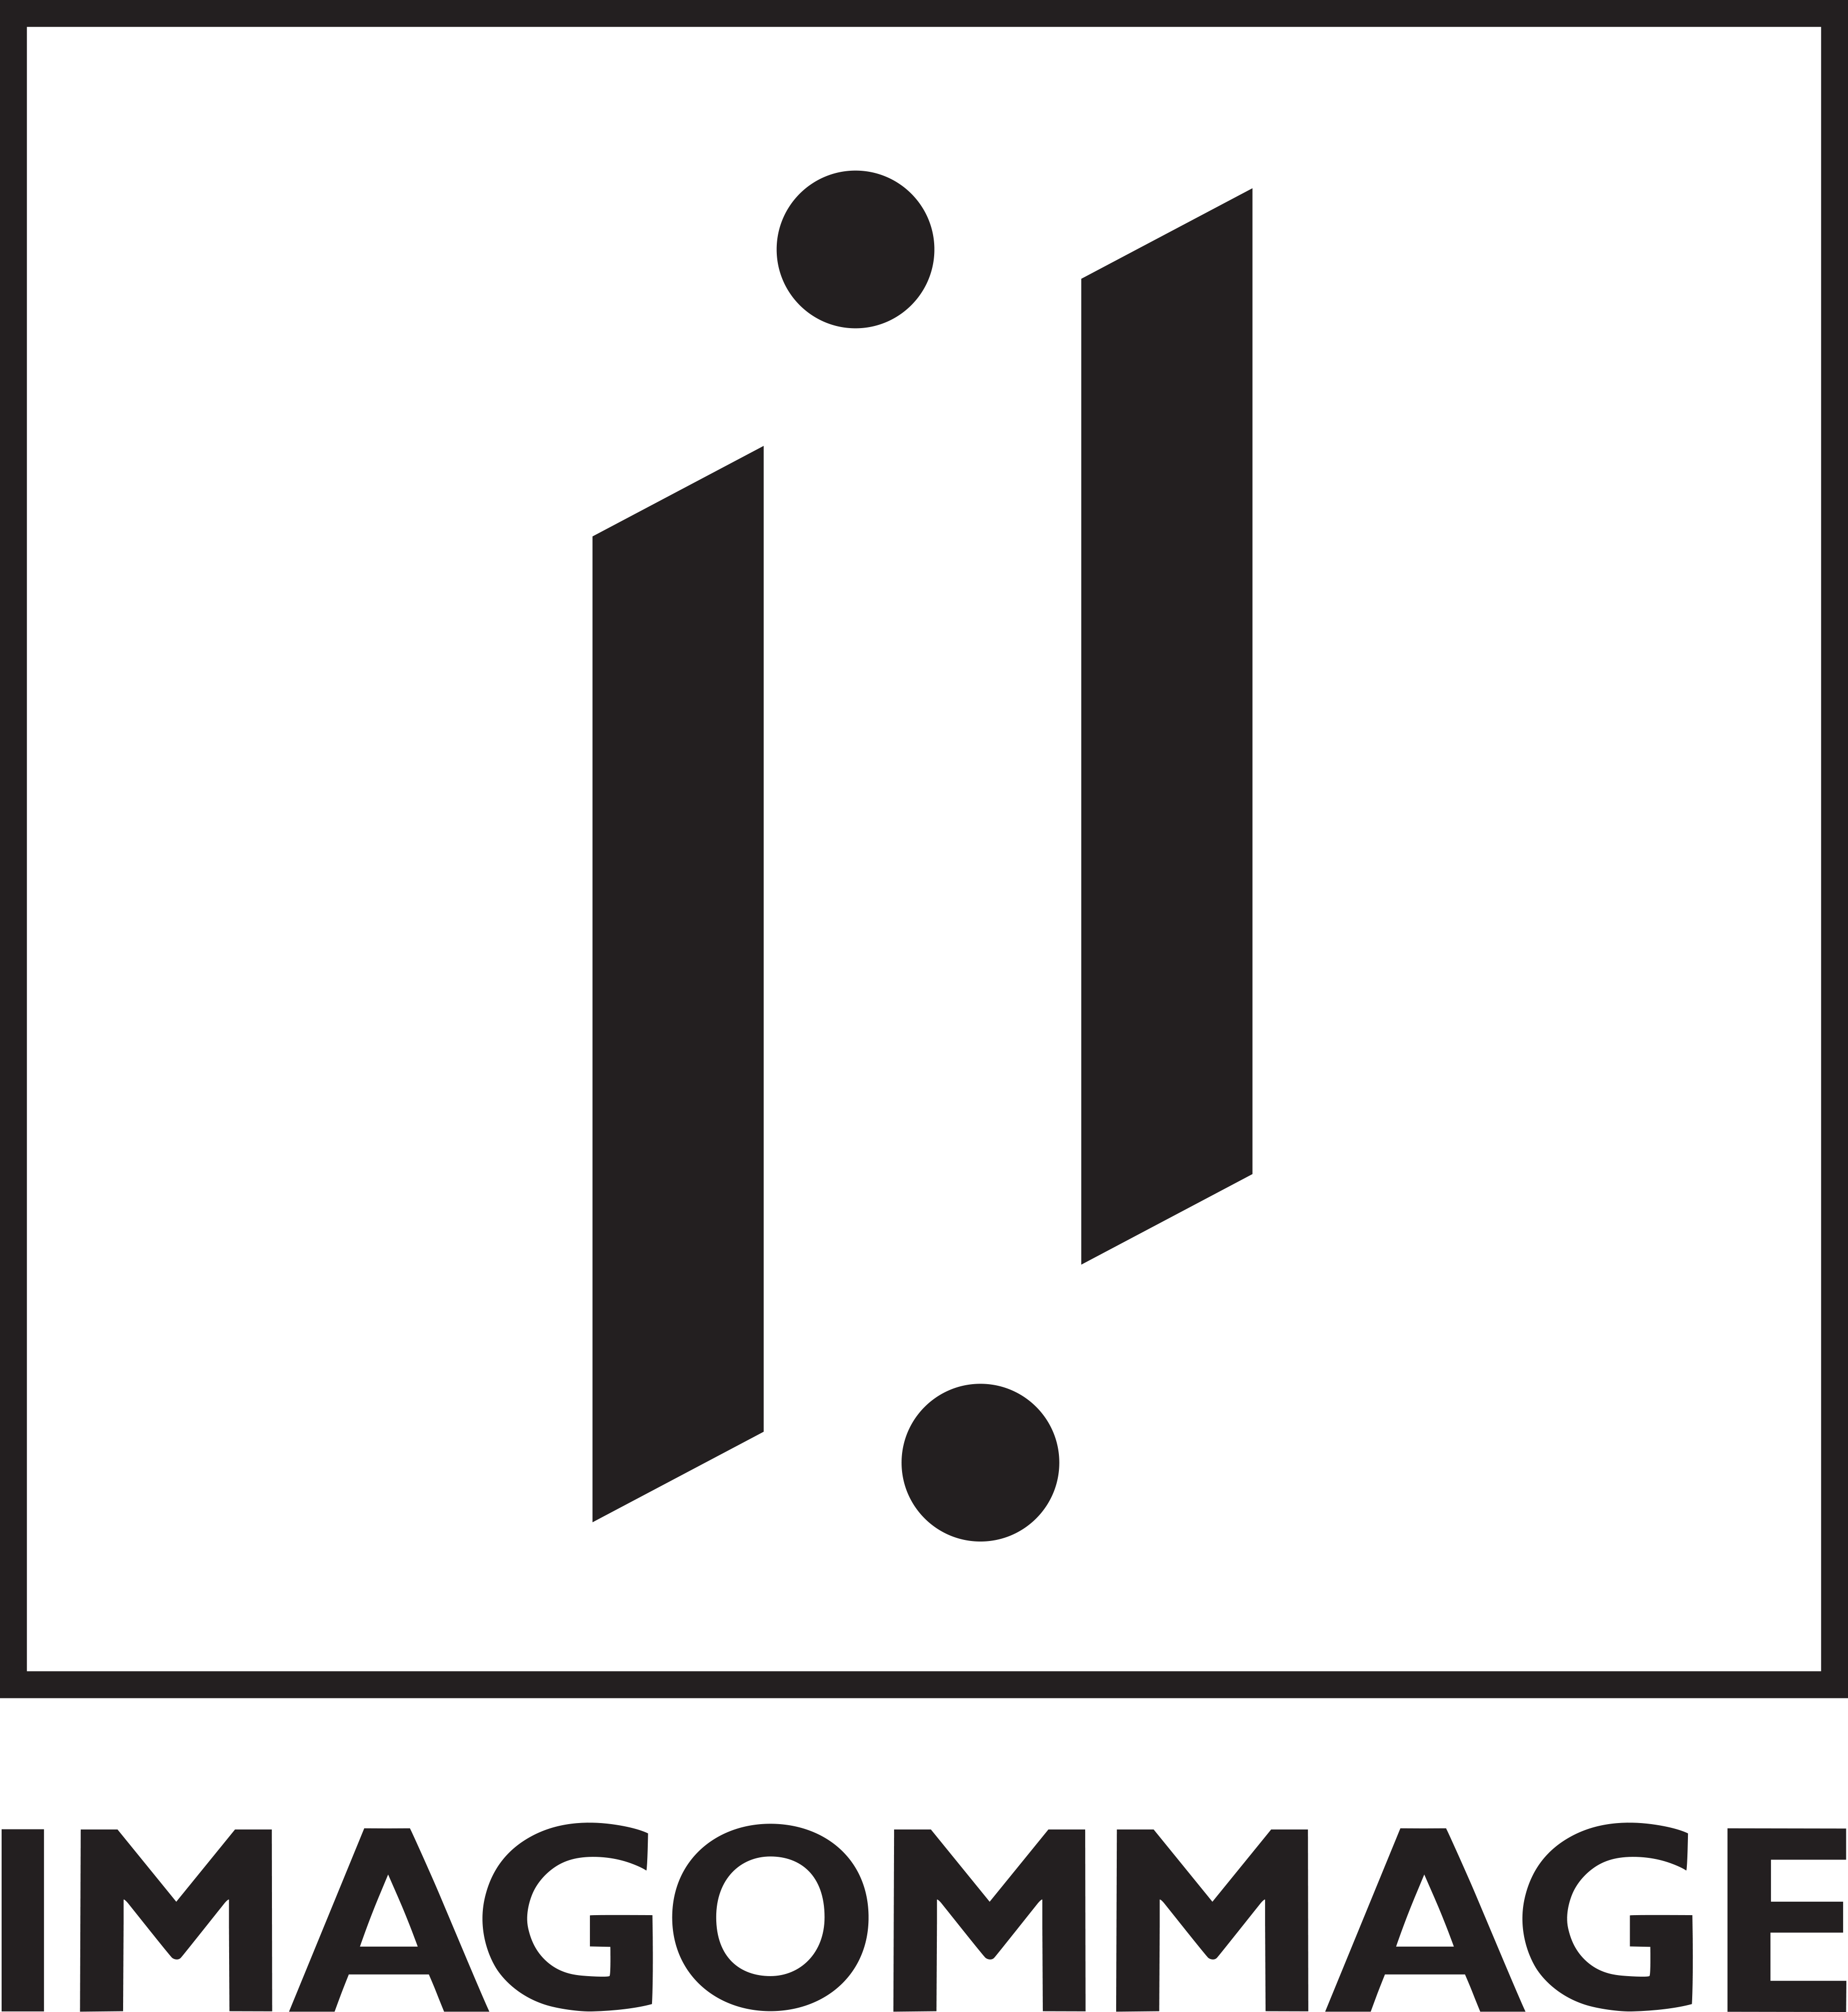 IMAGOMMAGE